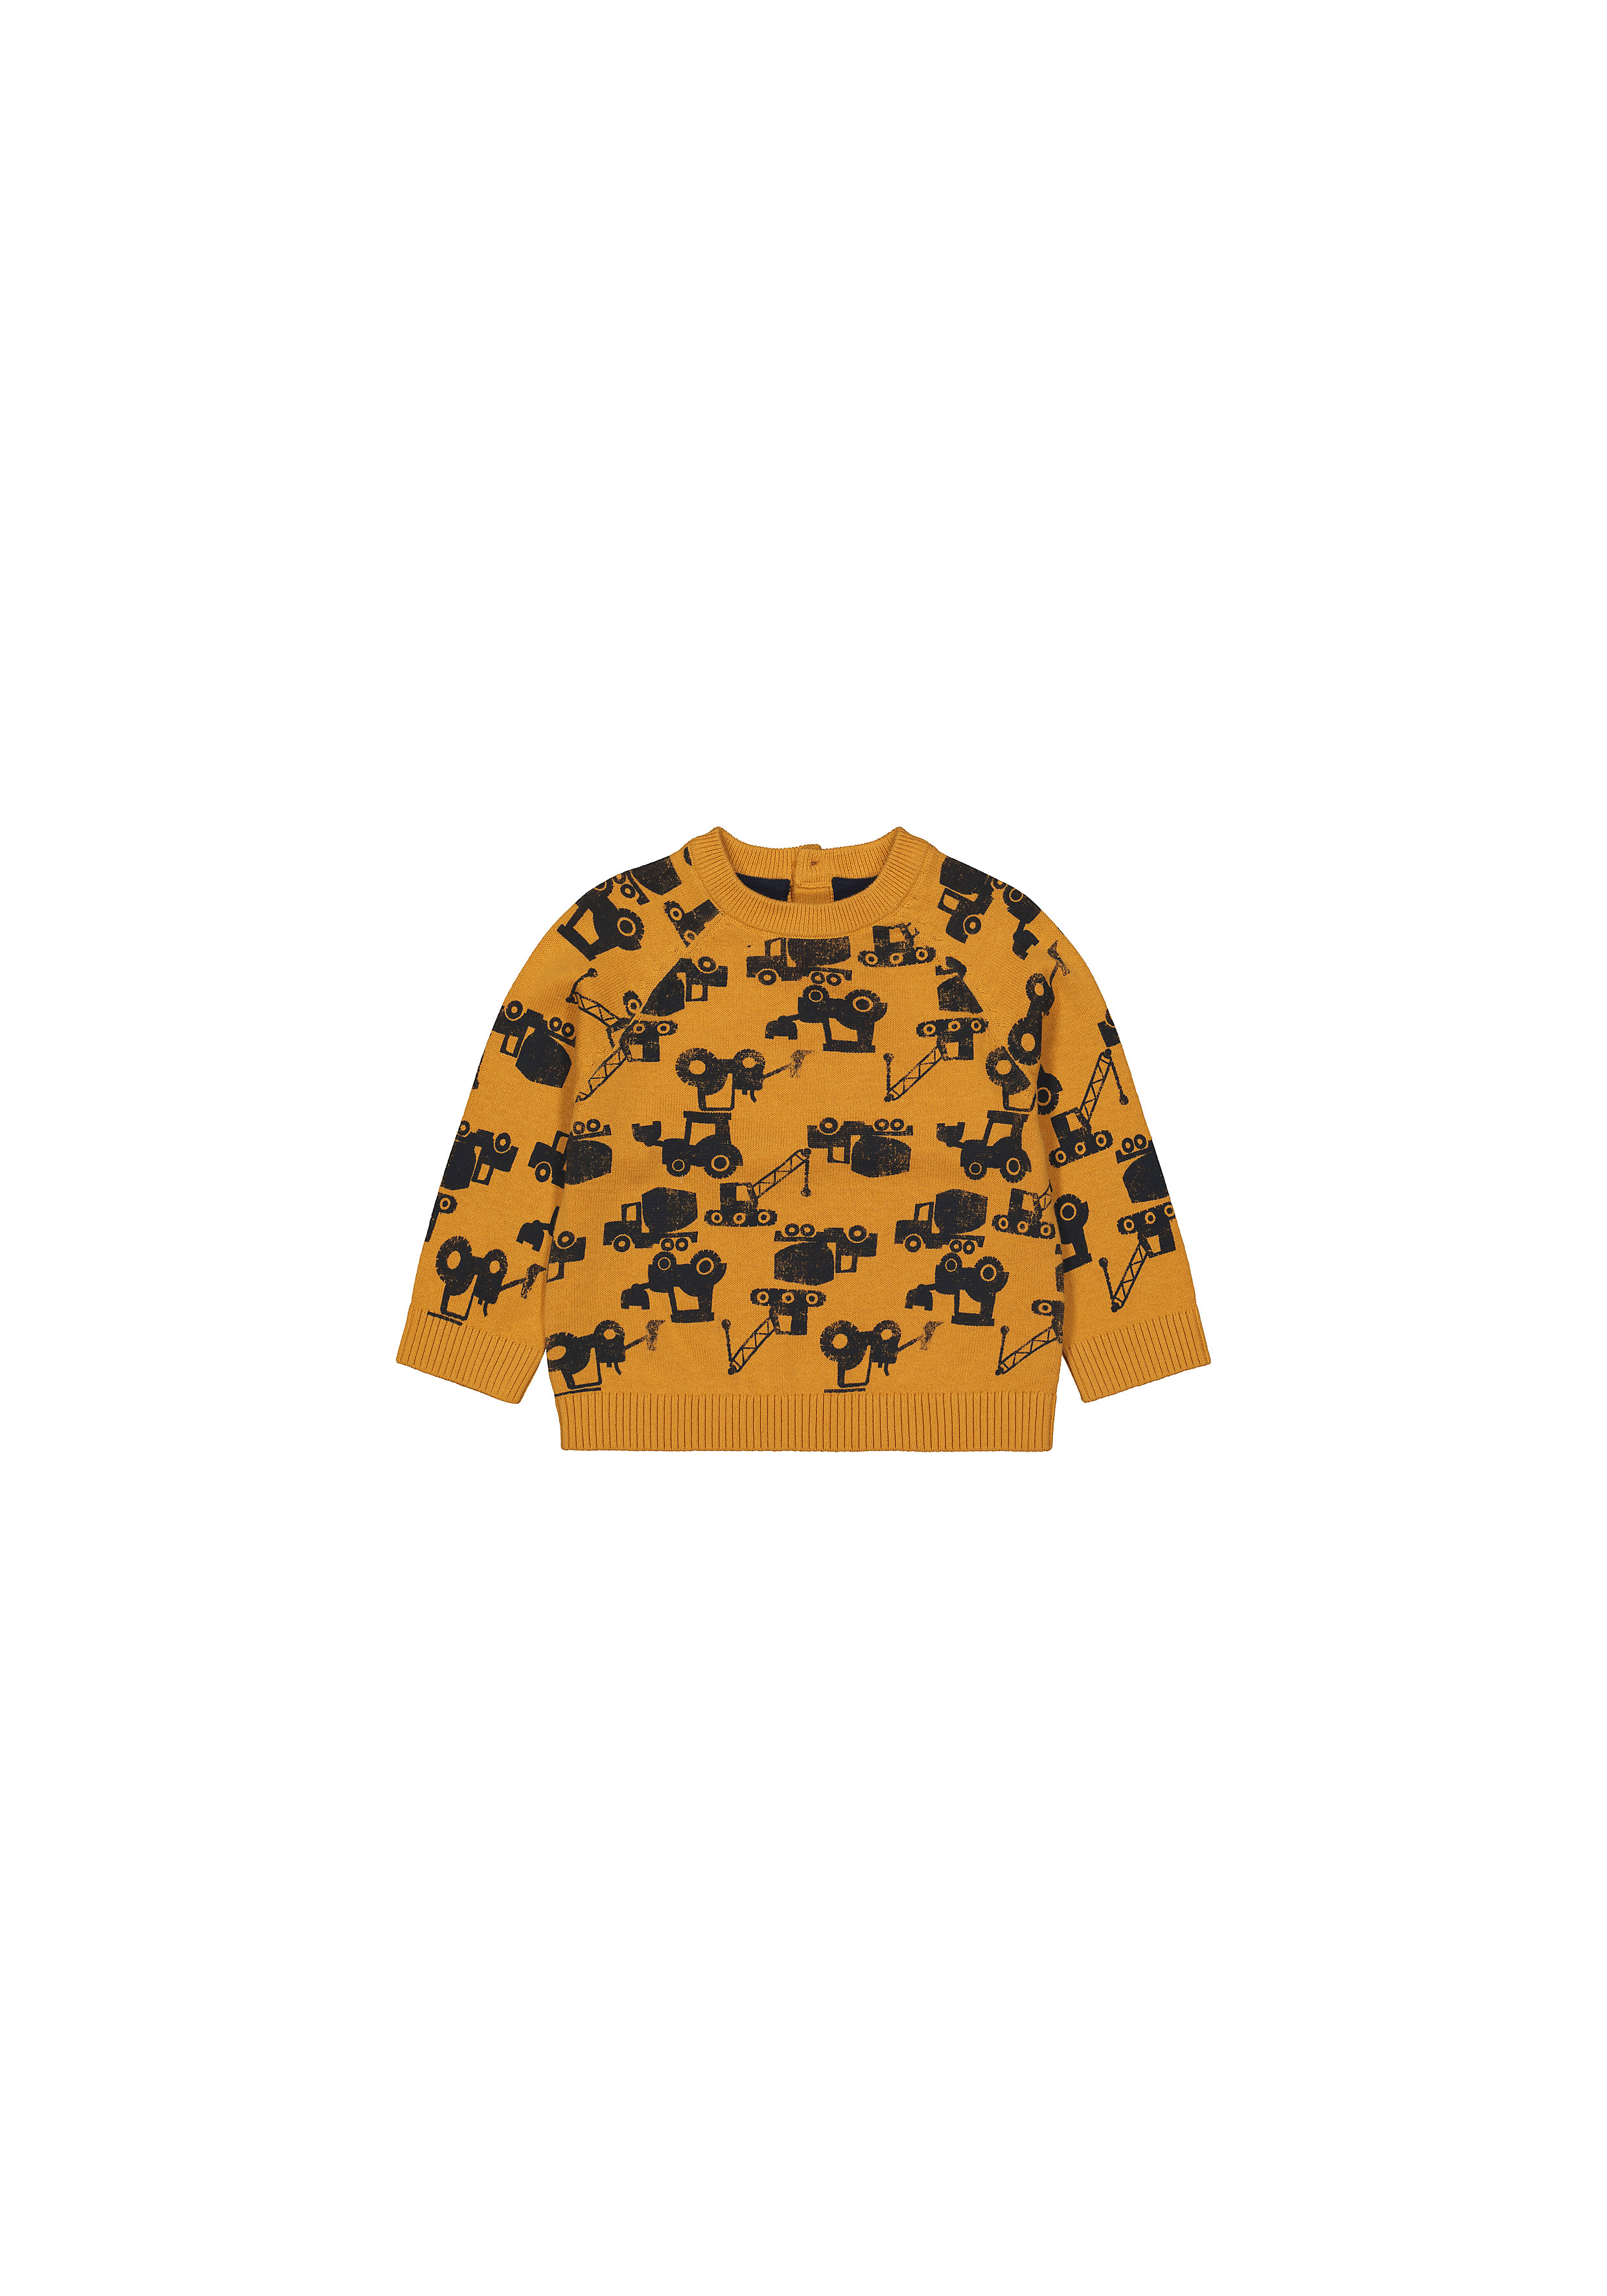 Mothercare | Boys Full Sleeves Sweaters  - Mustard